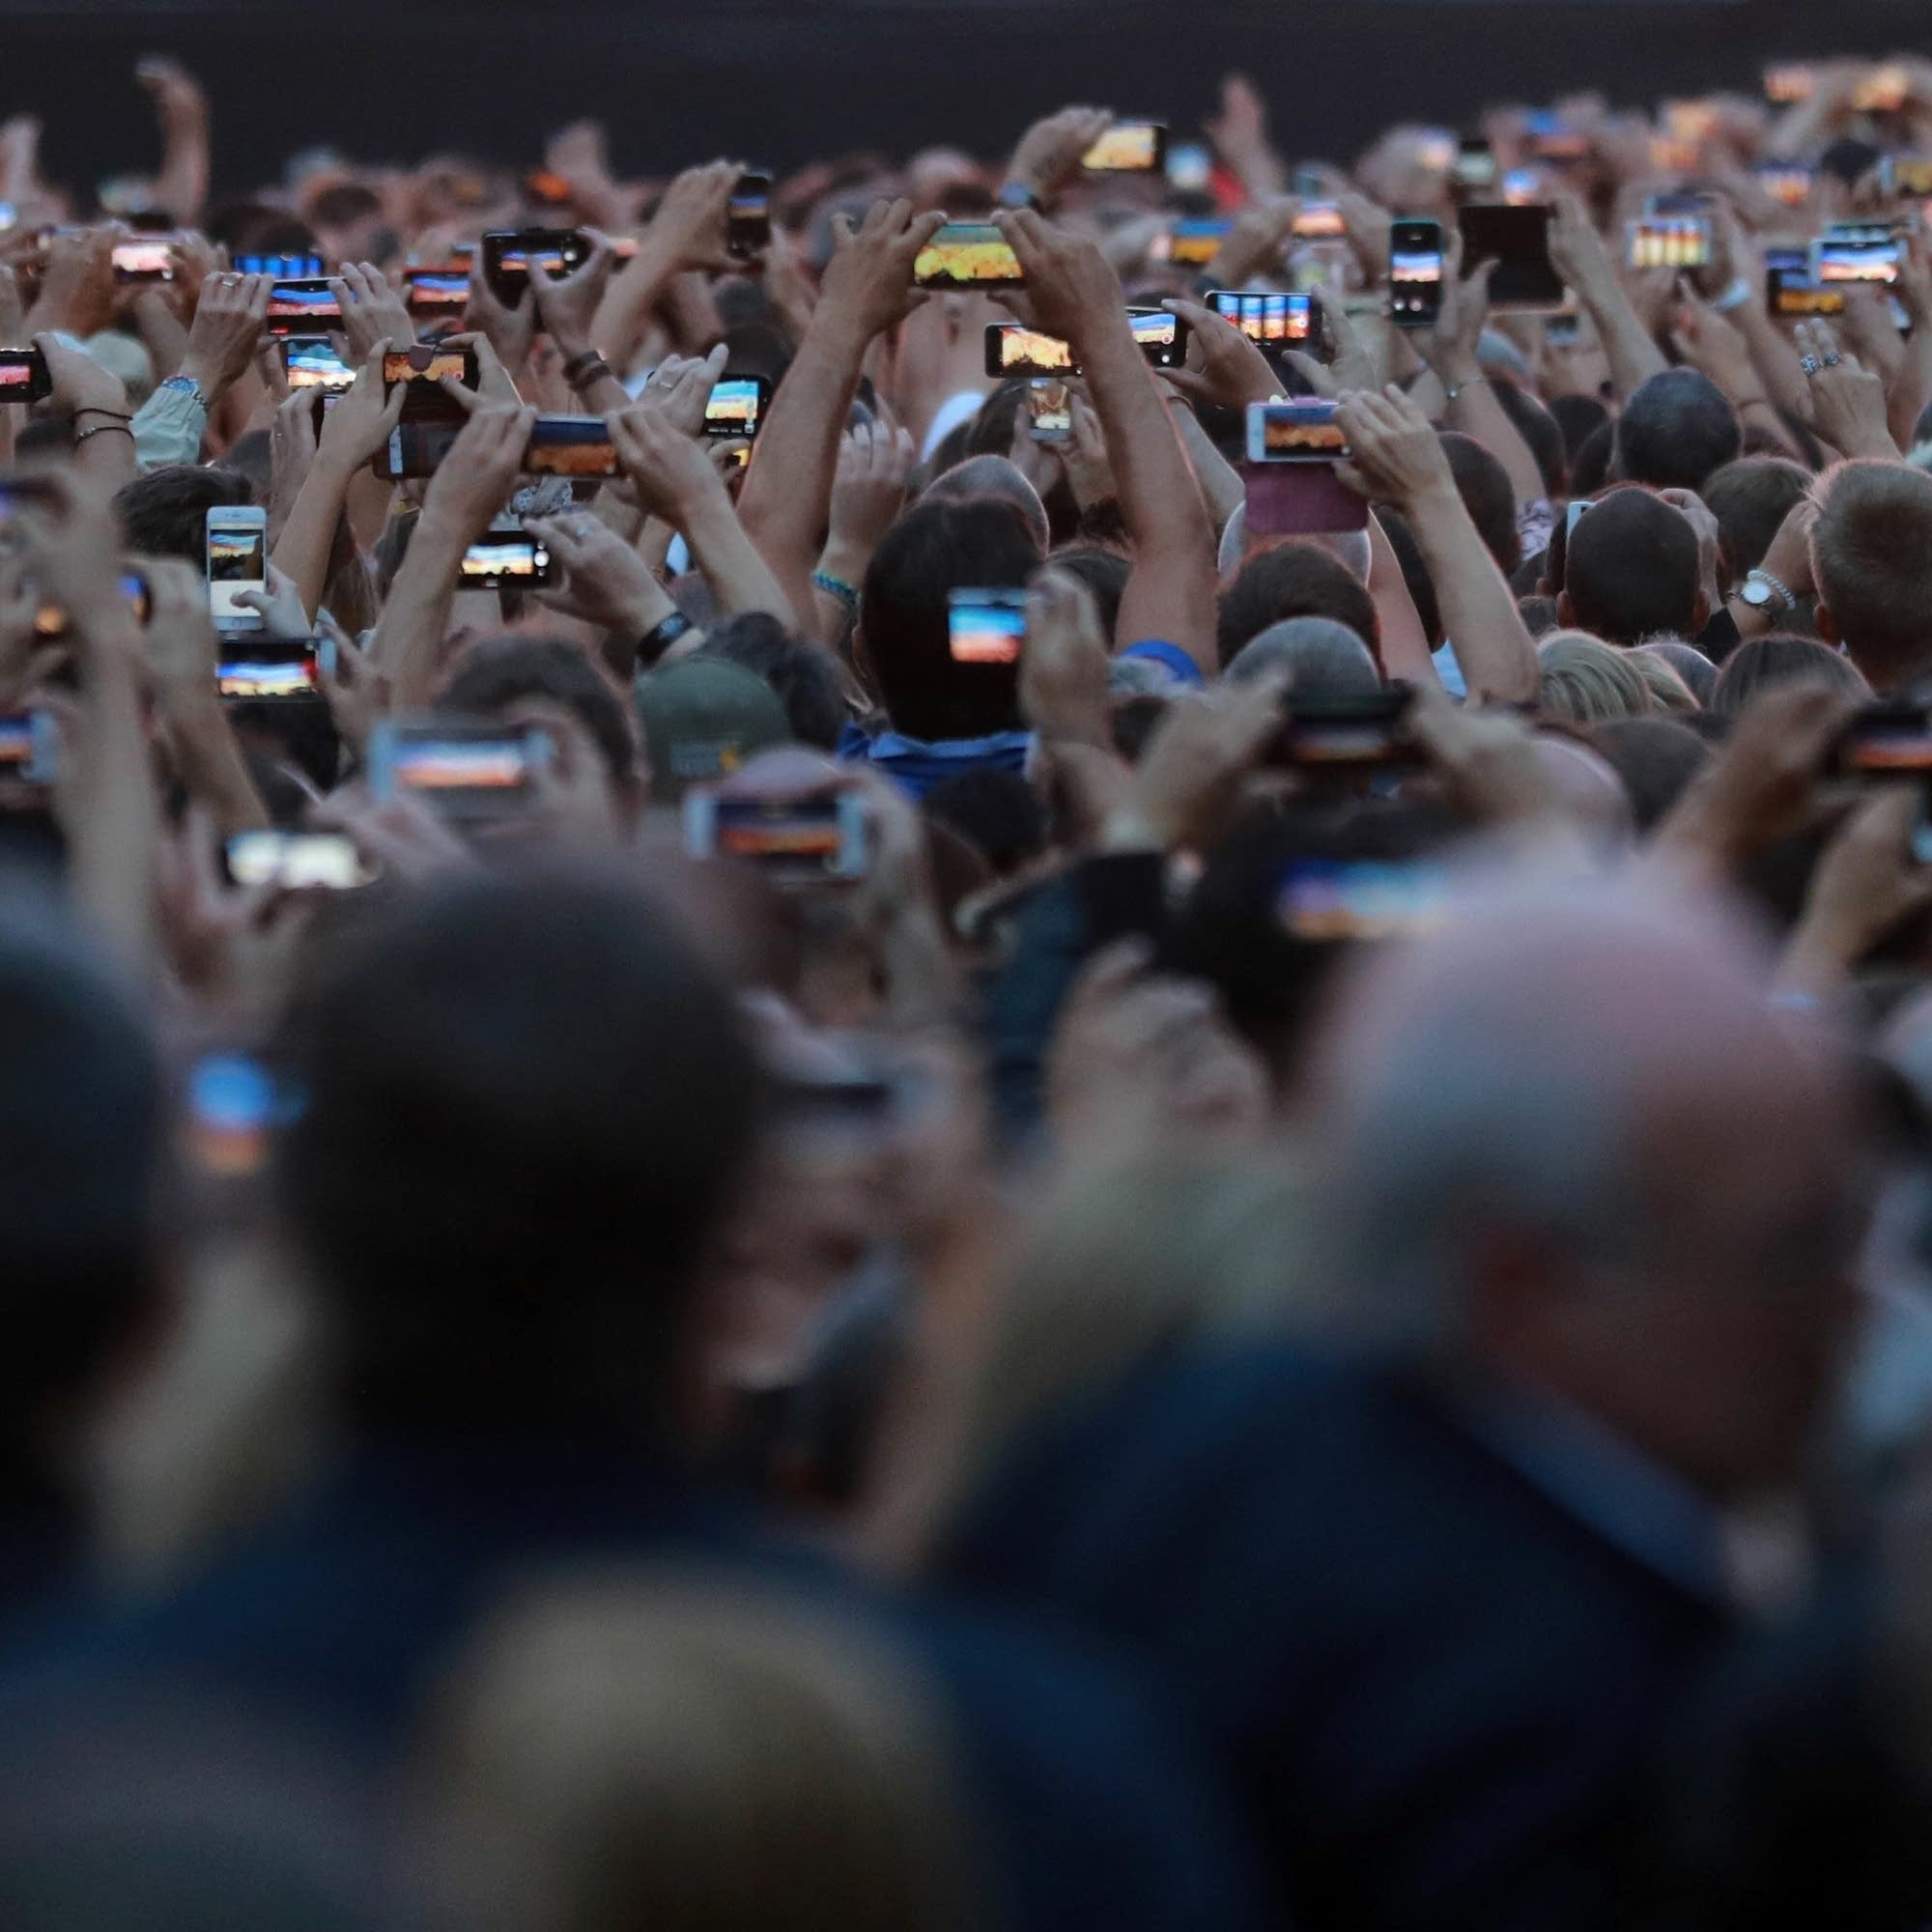 A crowd at a 2017 U2 show in France.